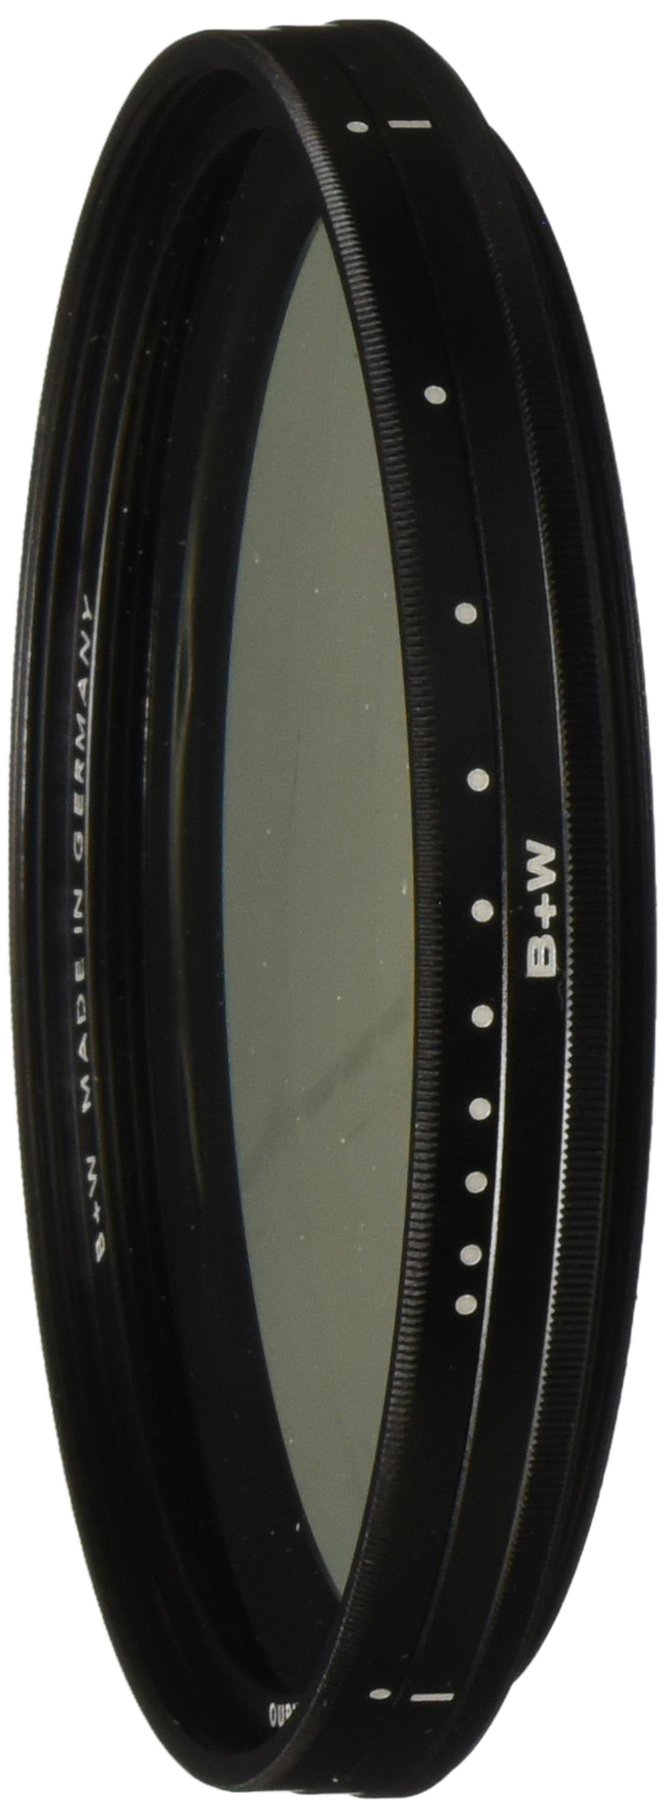 B+W 82mm XS-Pro Digital Vario Neutral Density with Nano Coating for Camera Lens by B + W